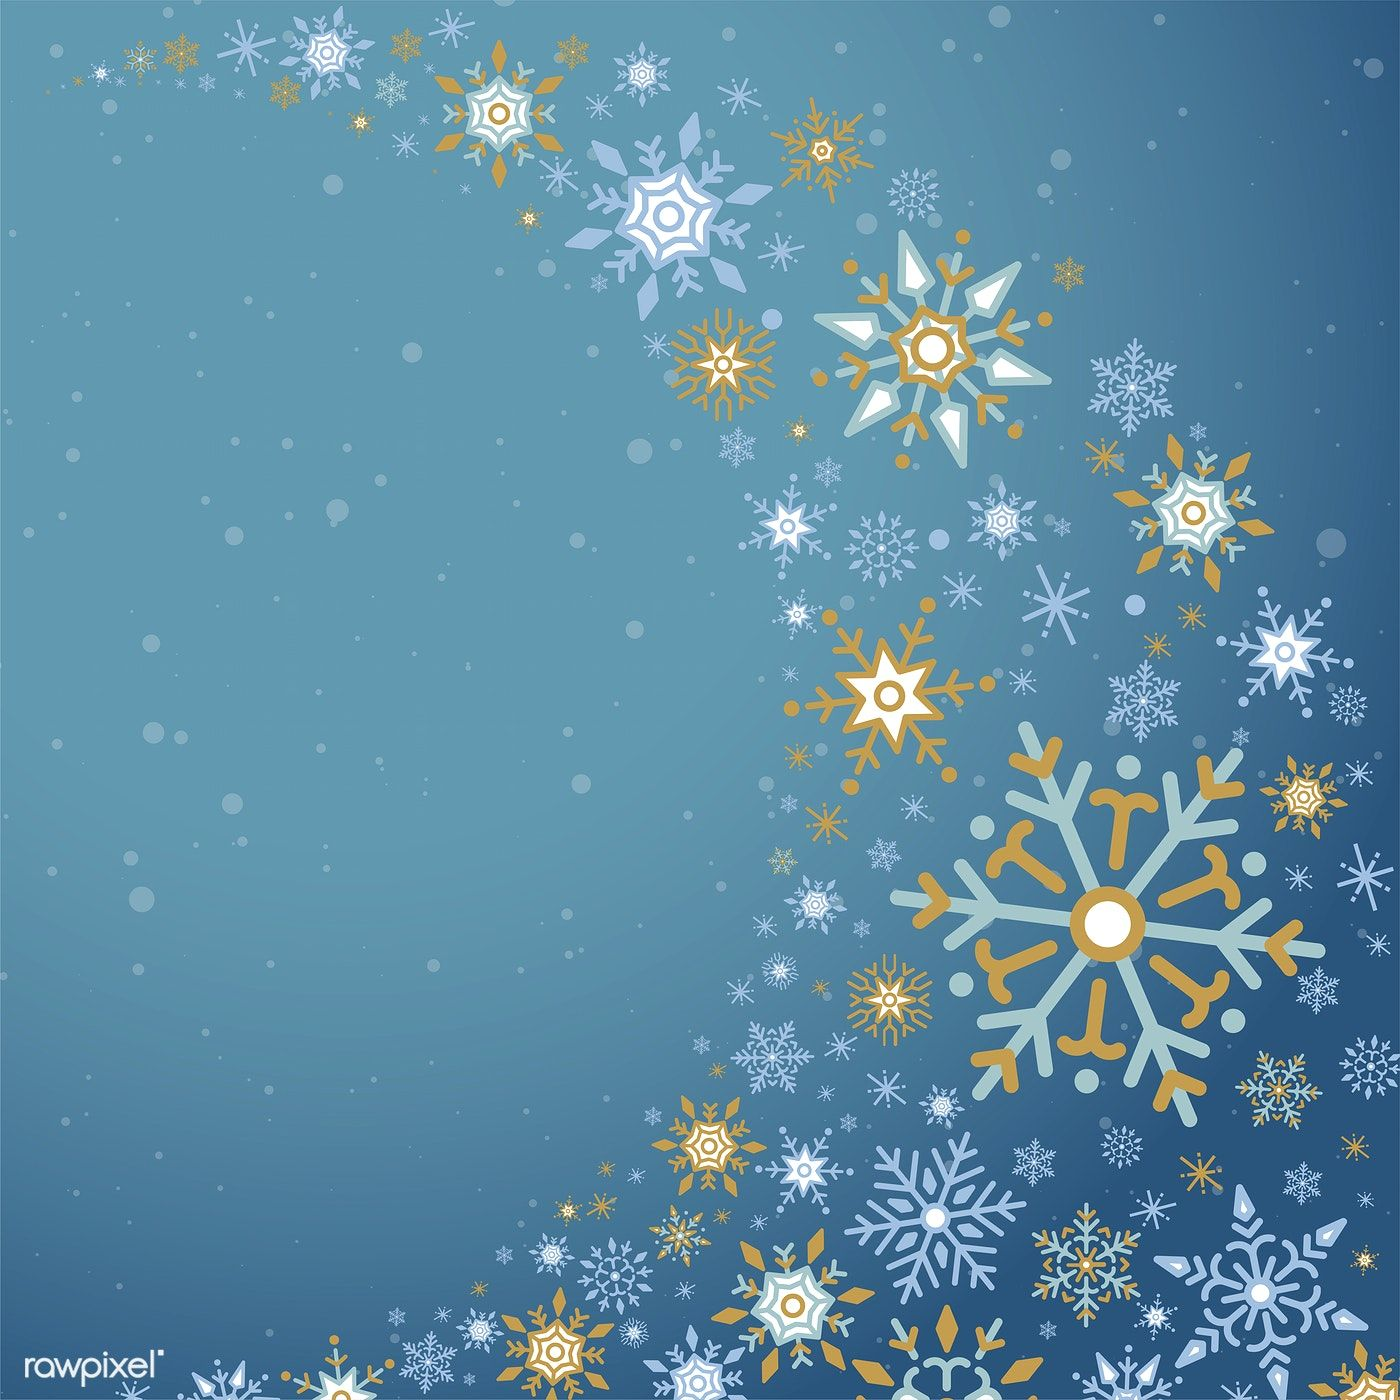 Blue Christmas Winter Holiday Background With Snowflake Vector Free Image By Rawpixel Com Holiday Background Blue Christmas Winter Wallpaper